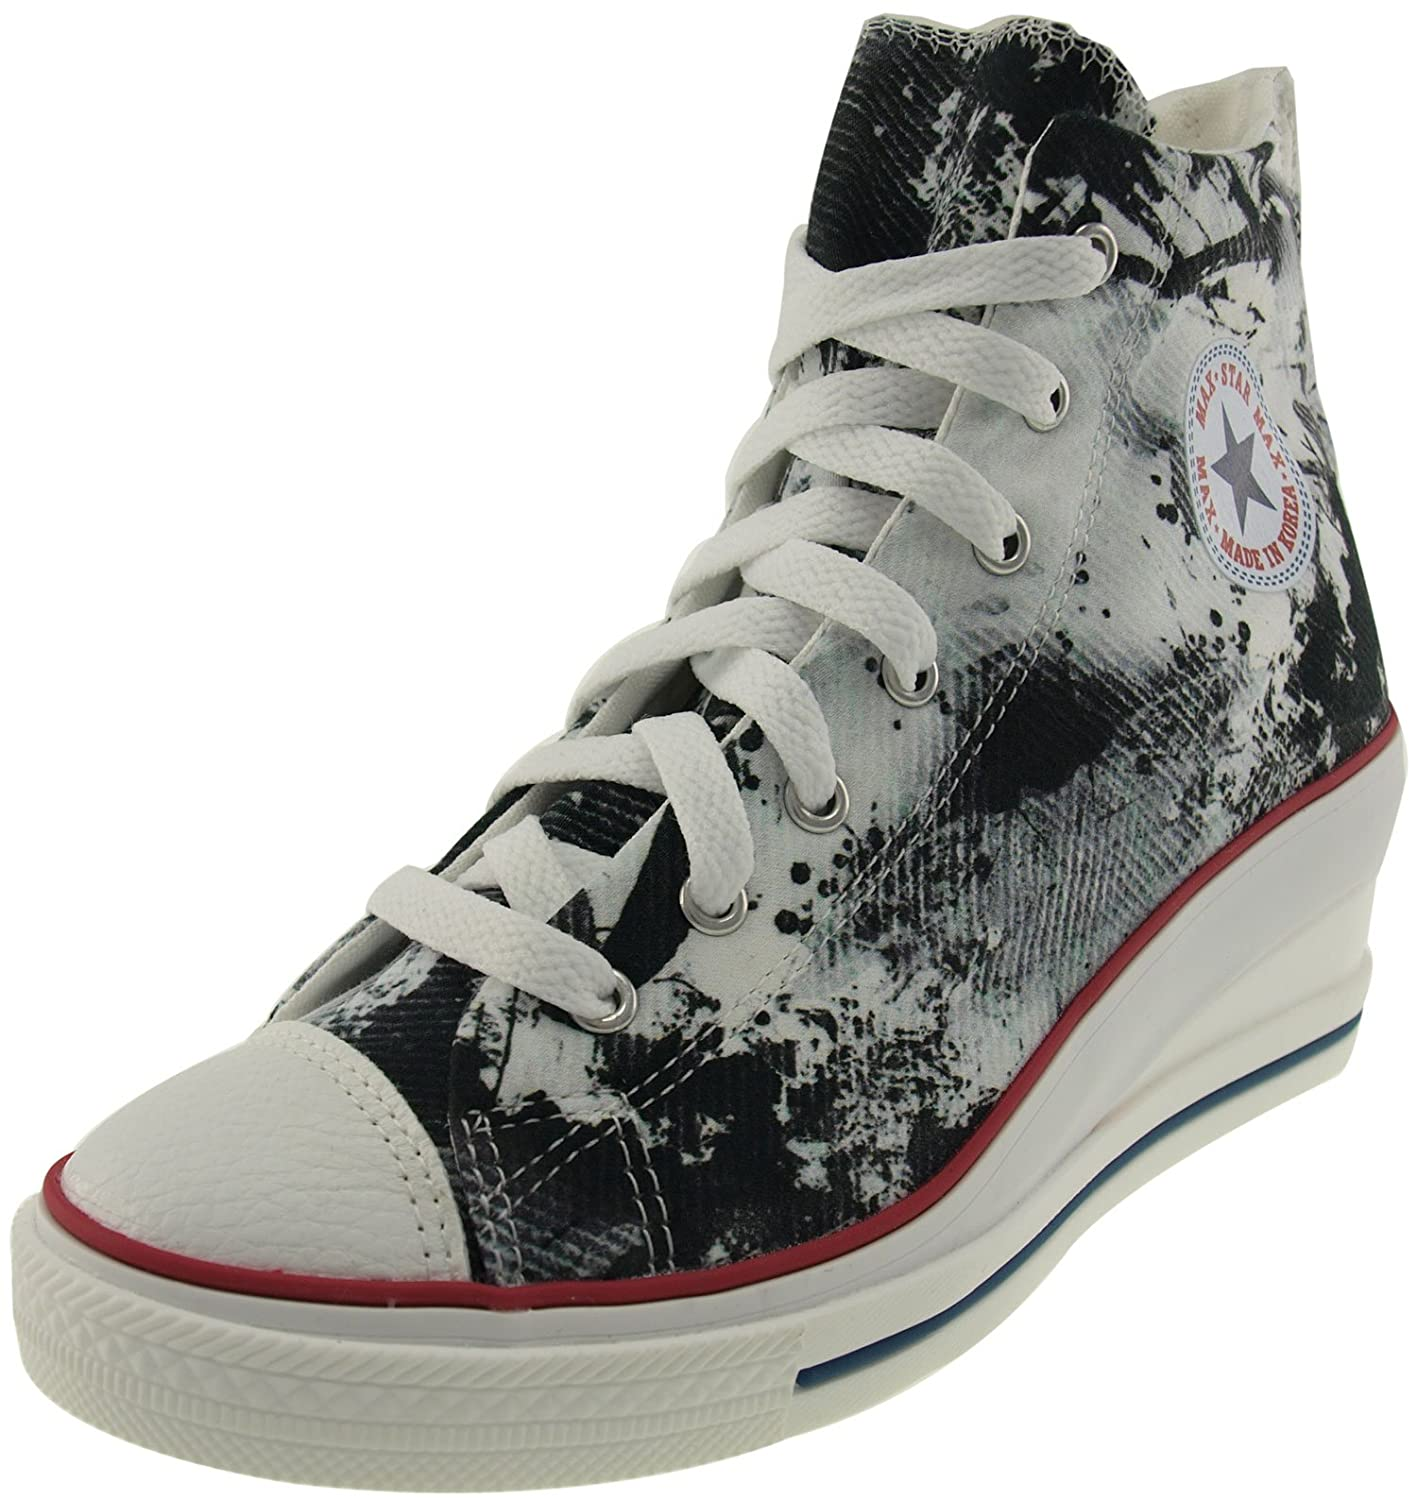 Maxstar Women's 7H Zipper Low Wedge Heel Sneakers B00XP08608 8 B(M) US|Printed Black